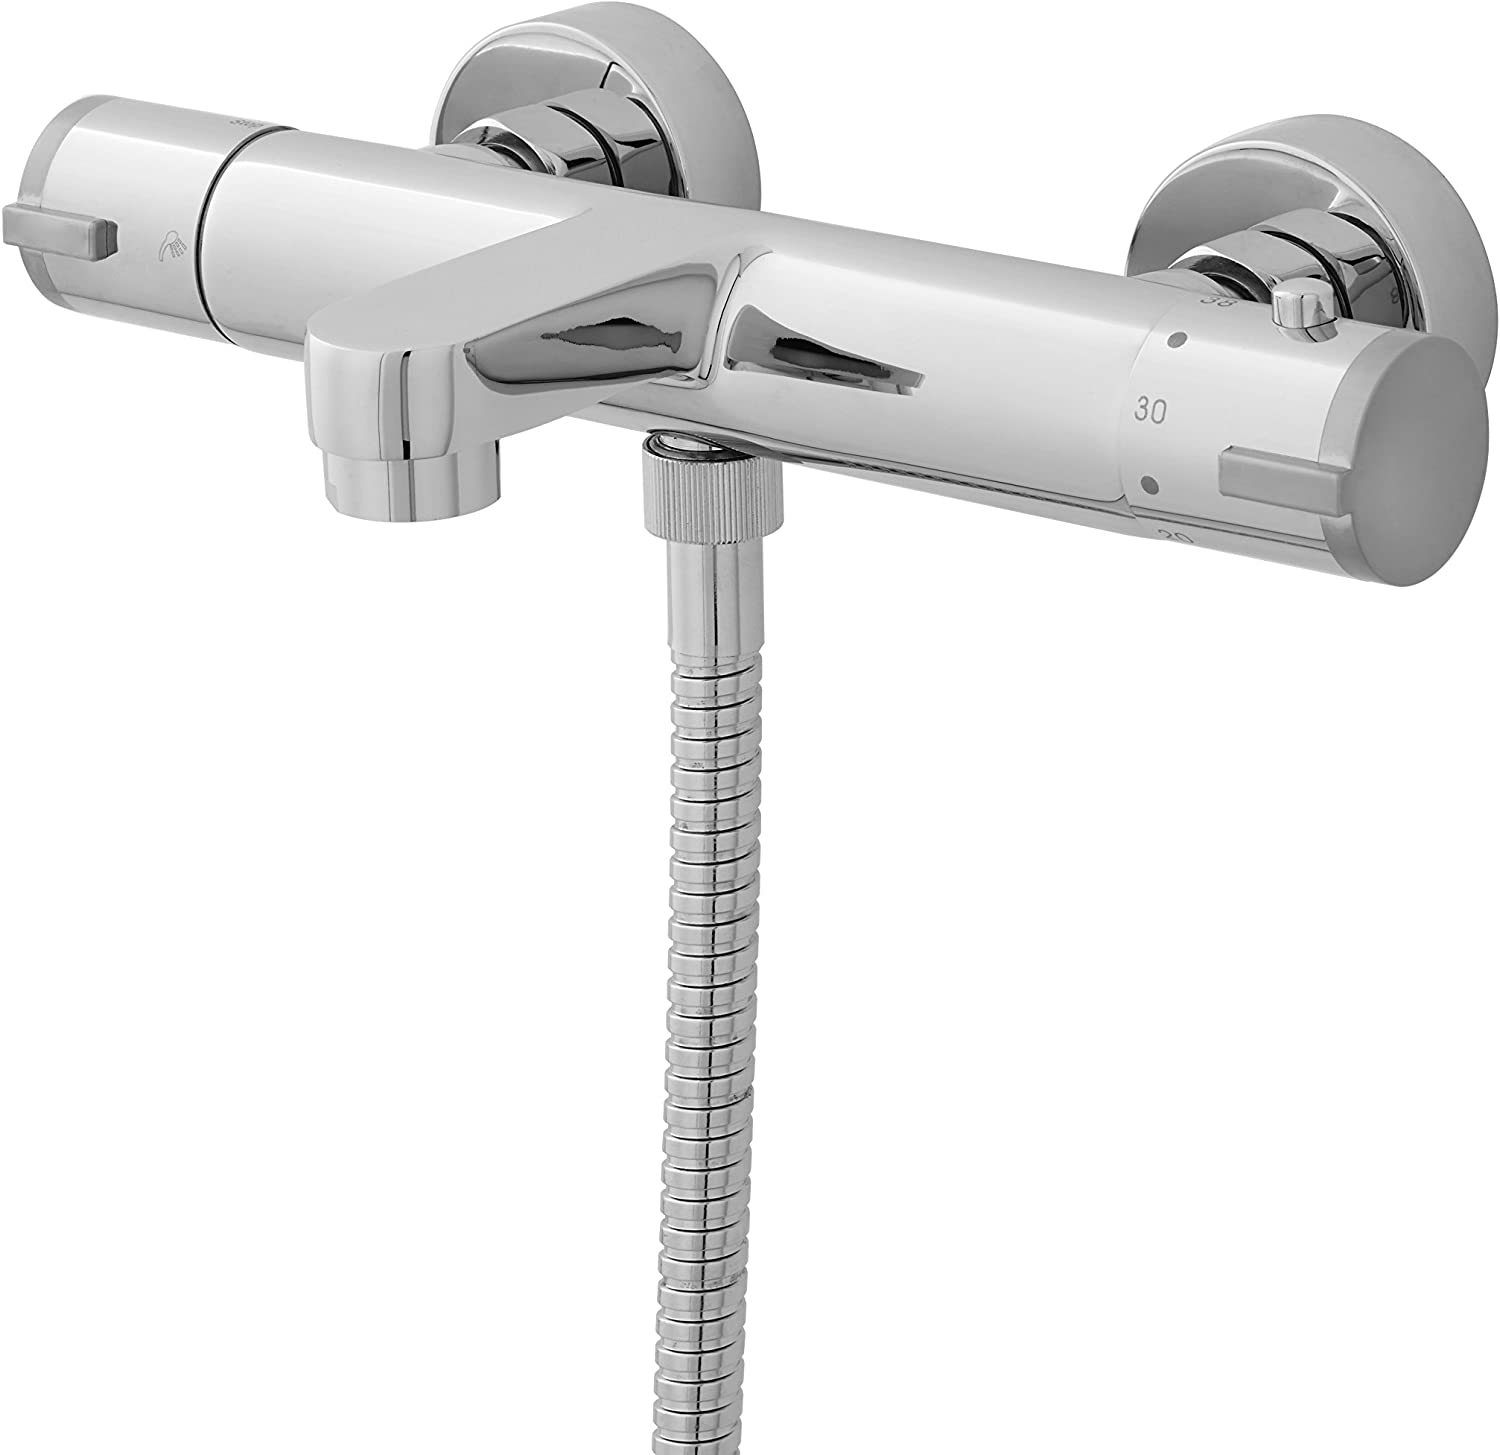 Ultra VBS021 Thermostatic Bath Shower Mixer without Shower Kit - Chrome